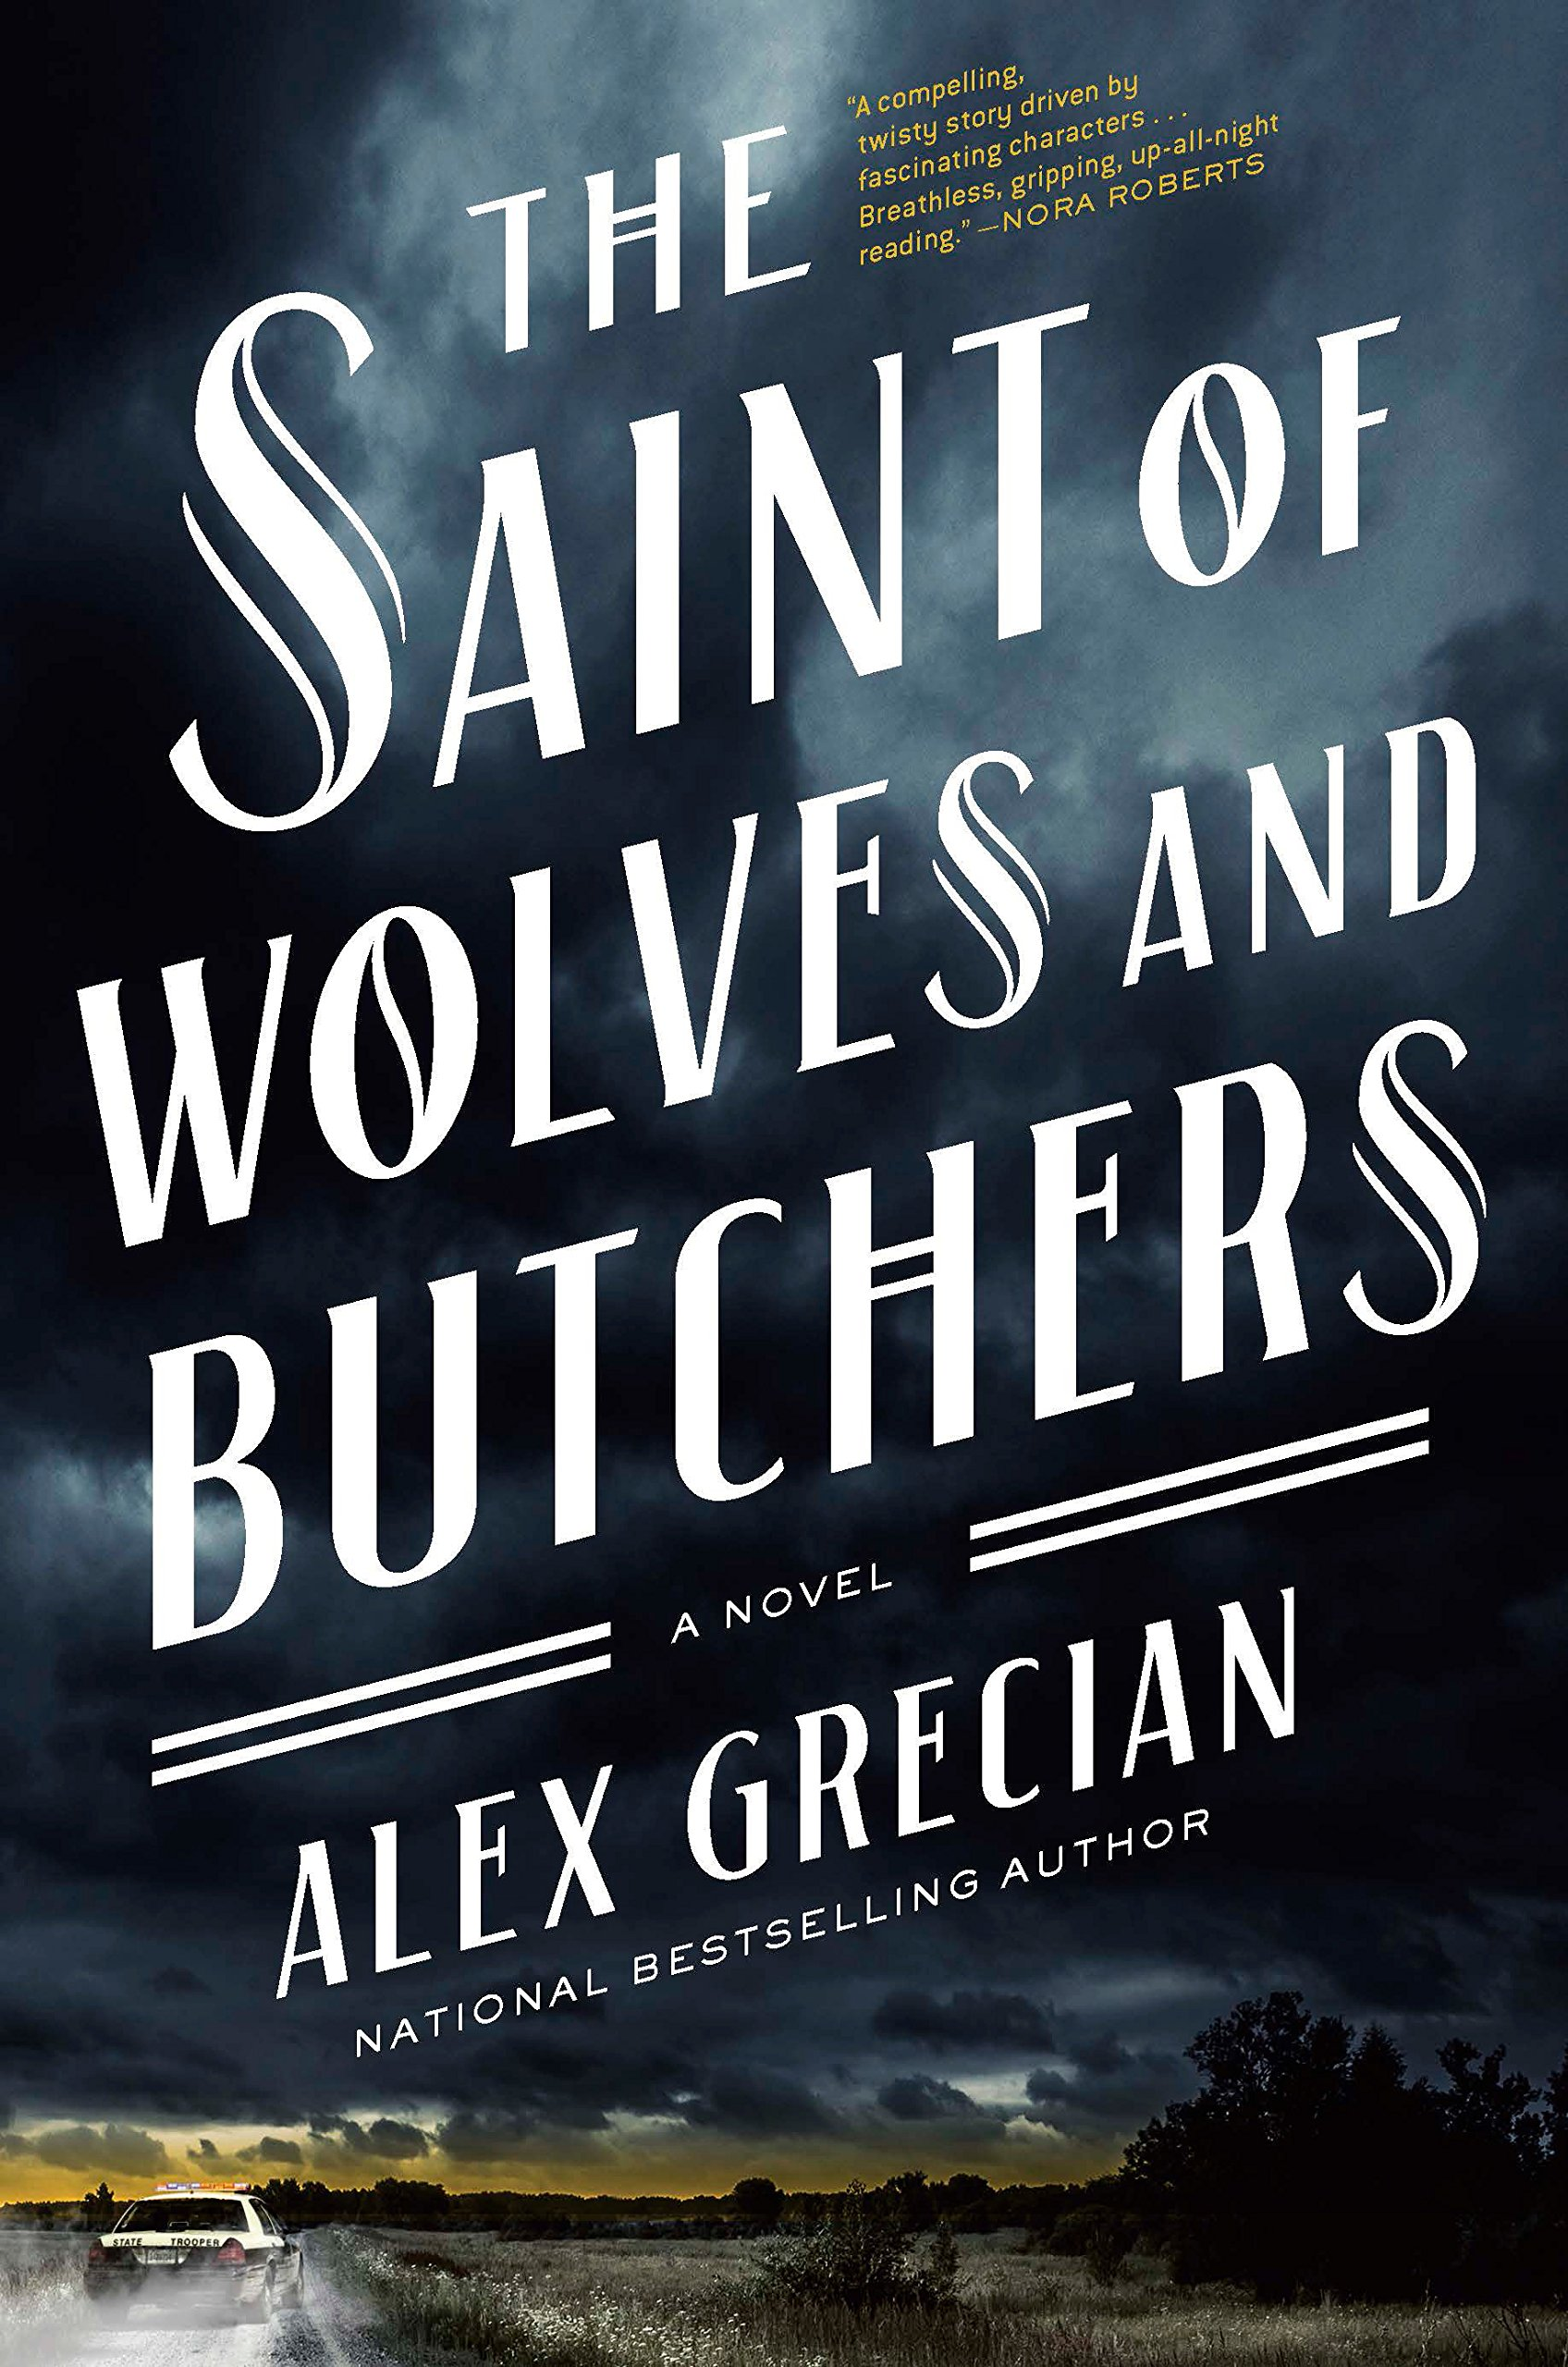 Read Online The Saint of Wolves and Butchers PDF